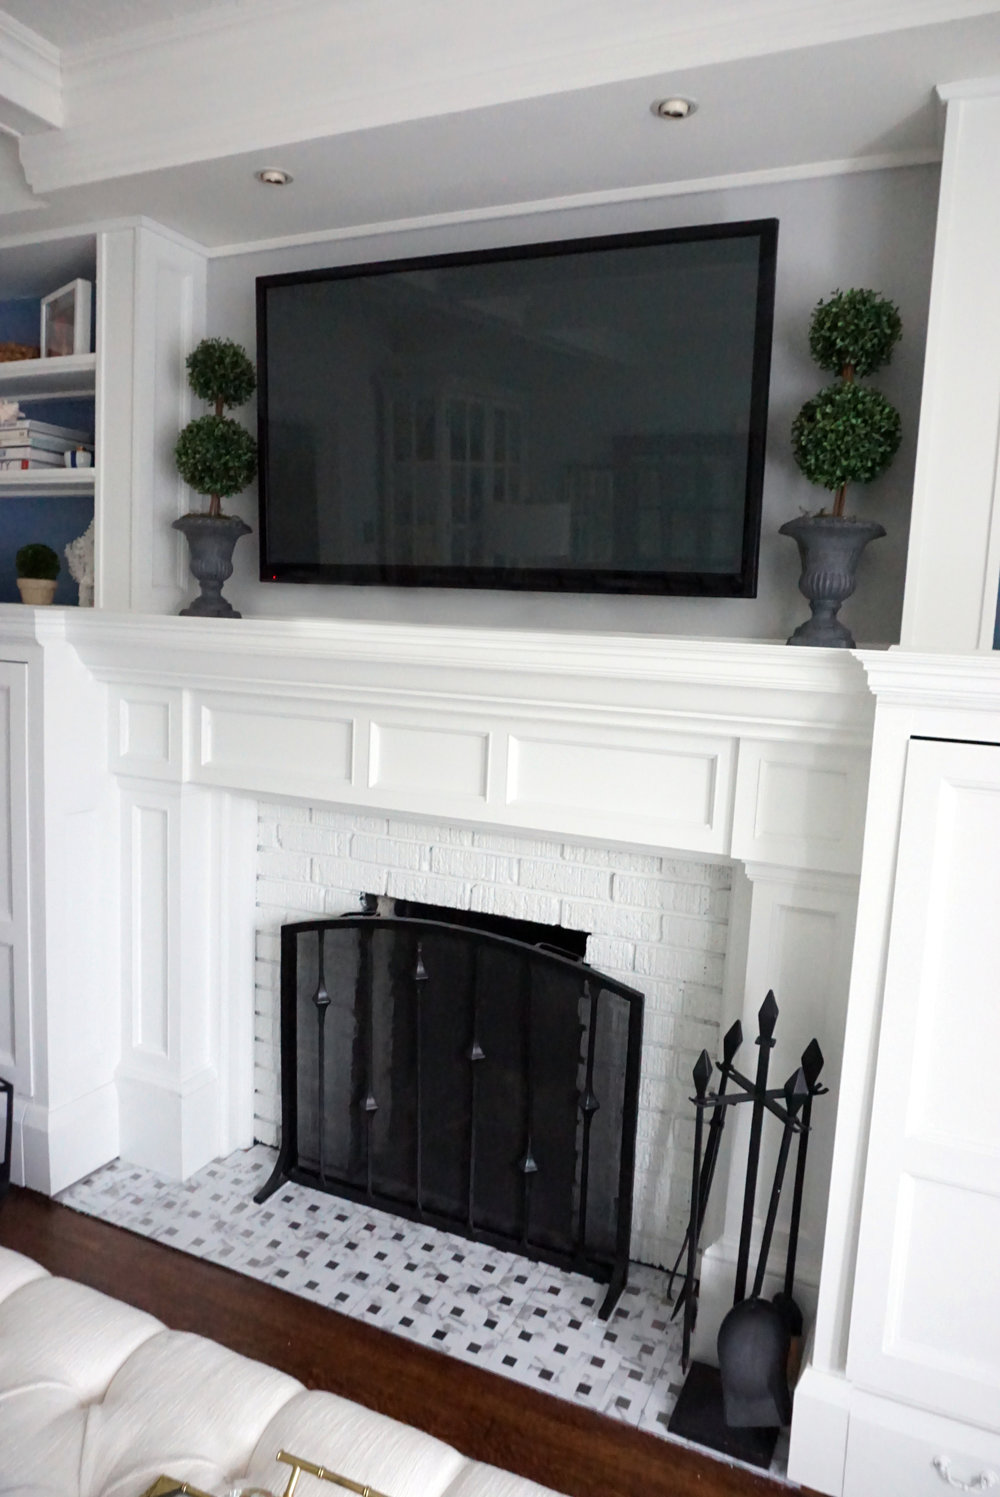 Finished Fireplace! This baby has come a long way...